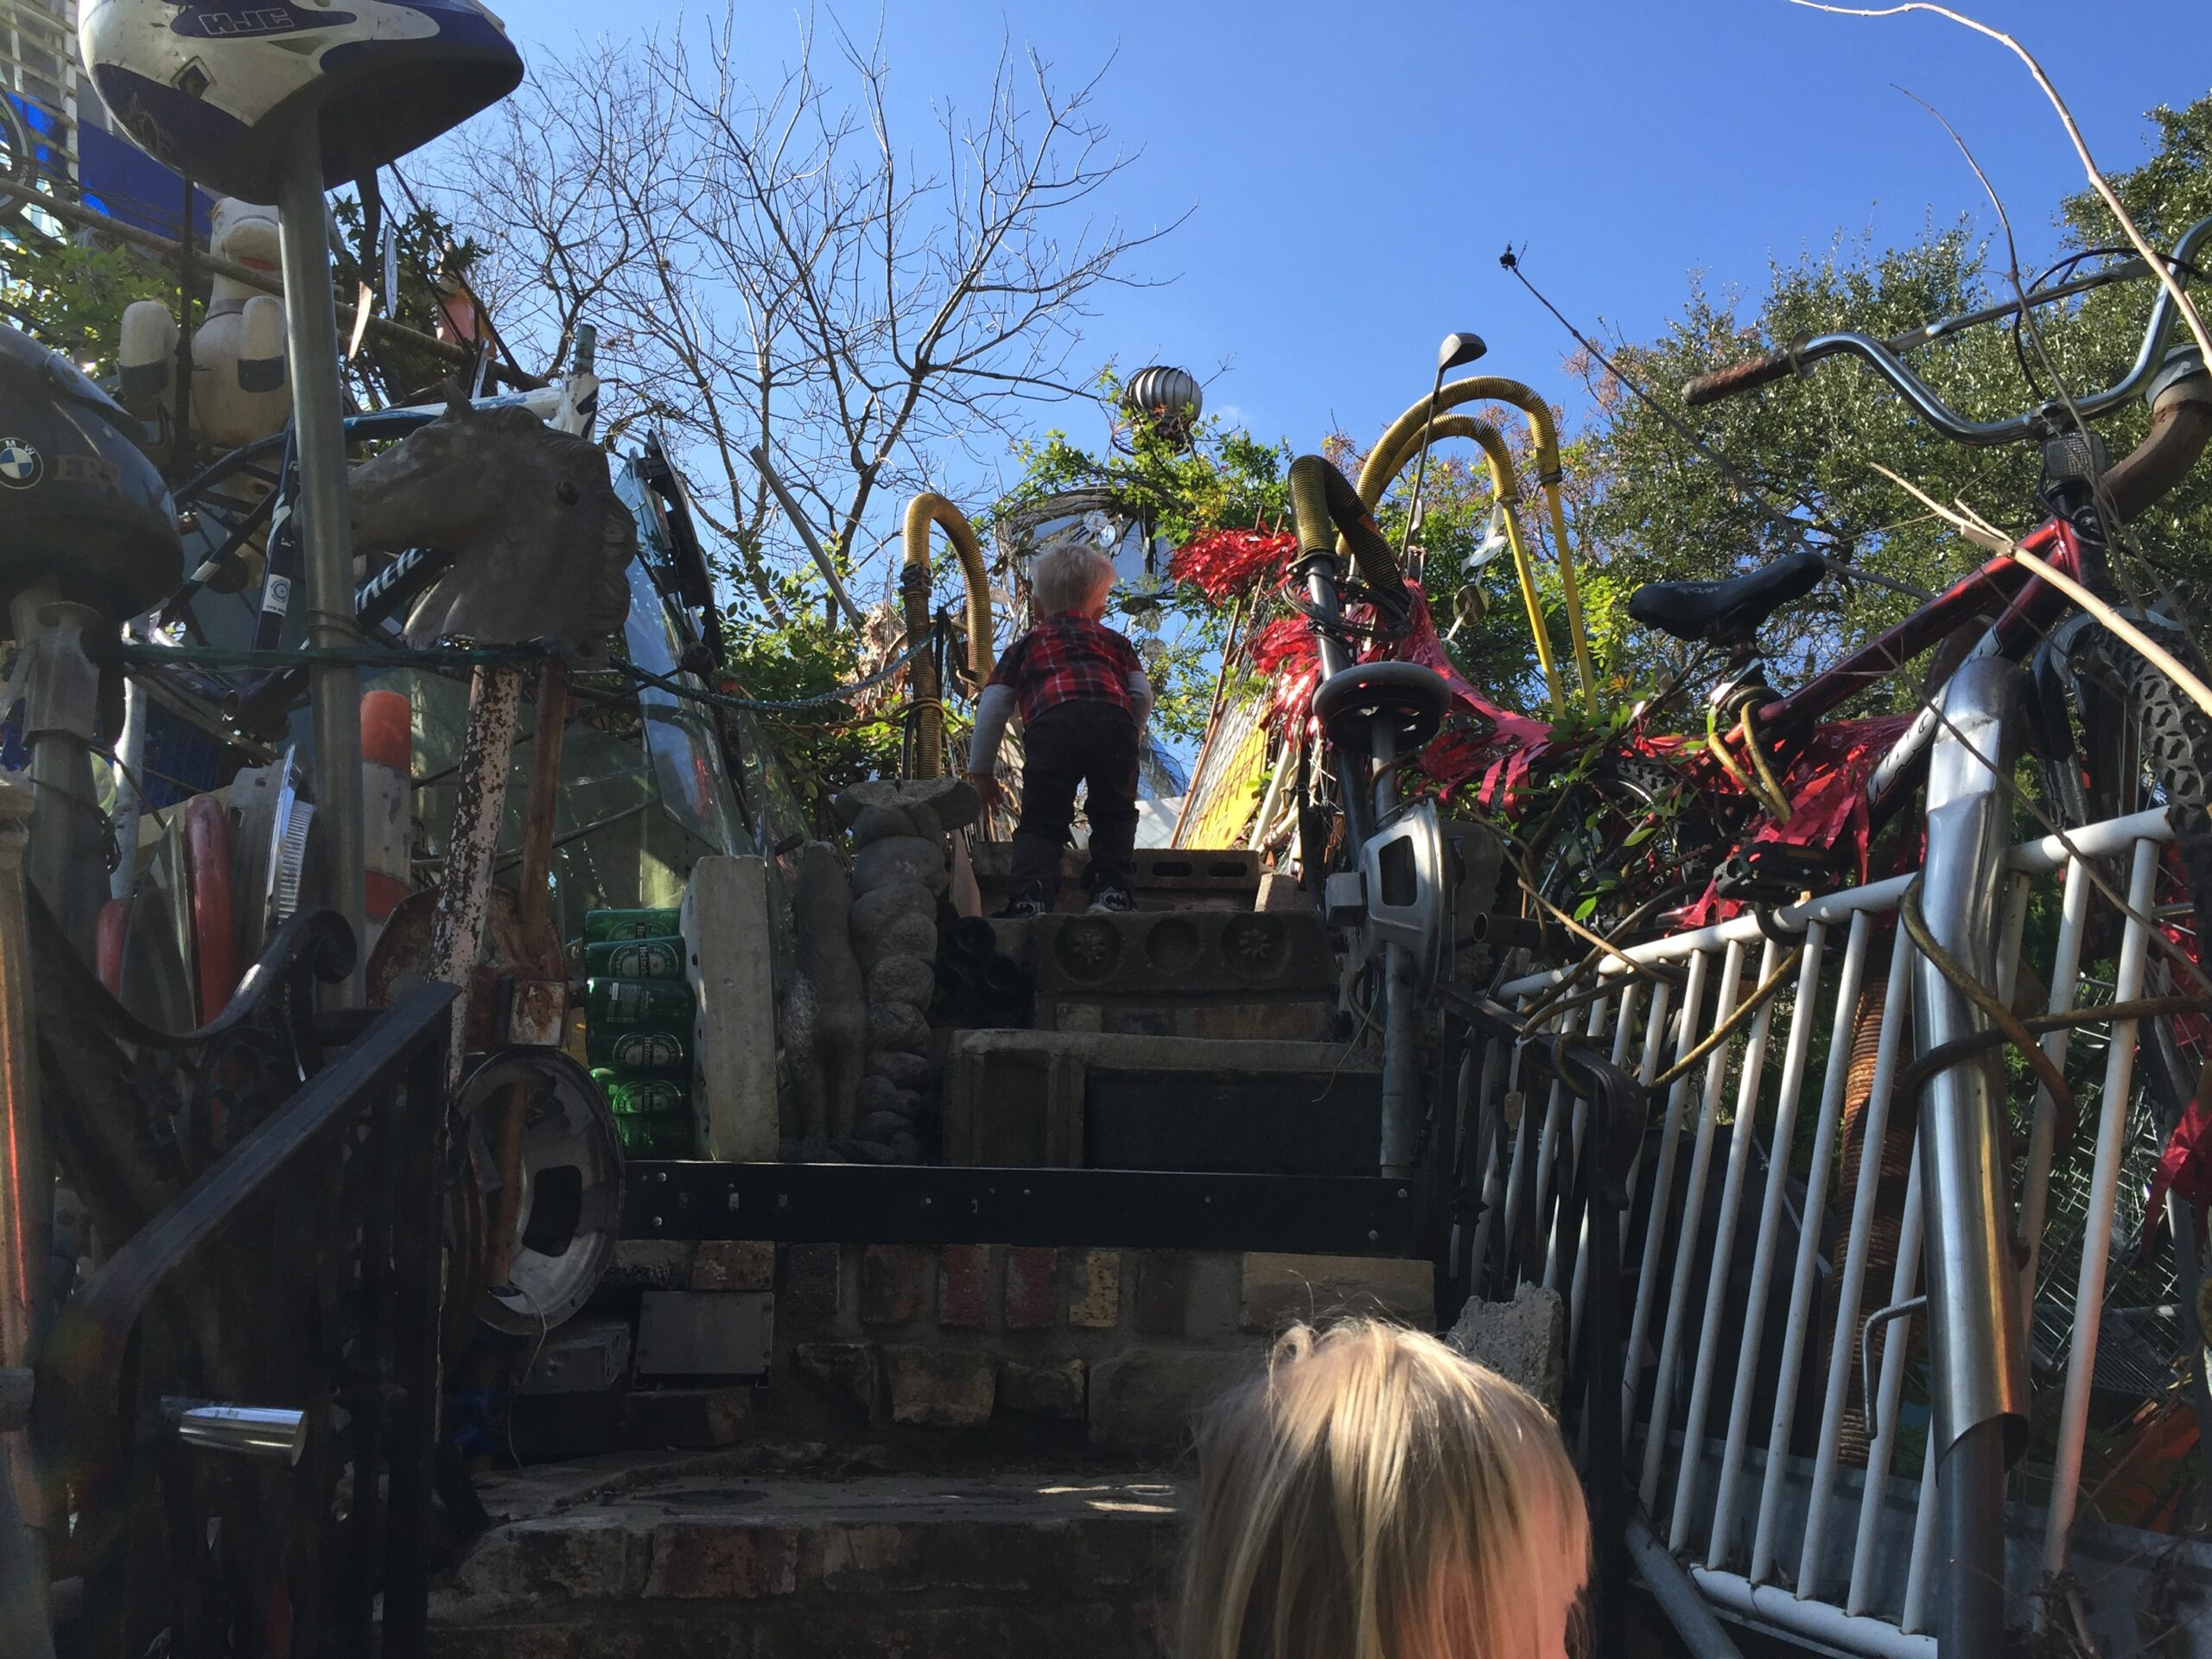 Cathedral of Junk - Heading up to the third-story level